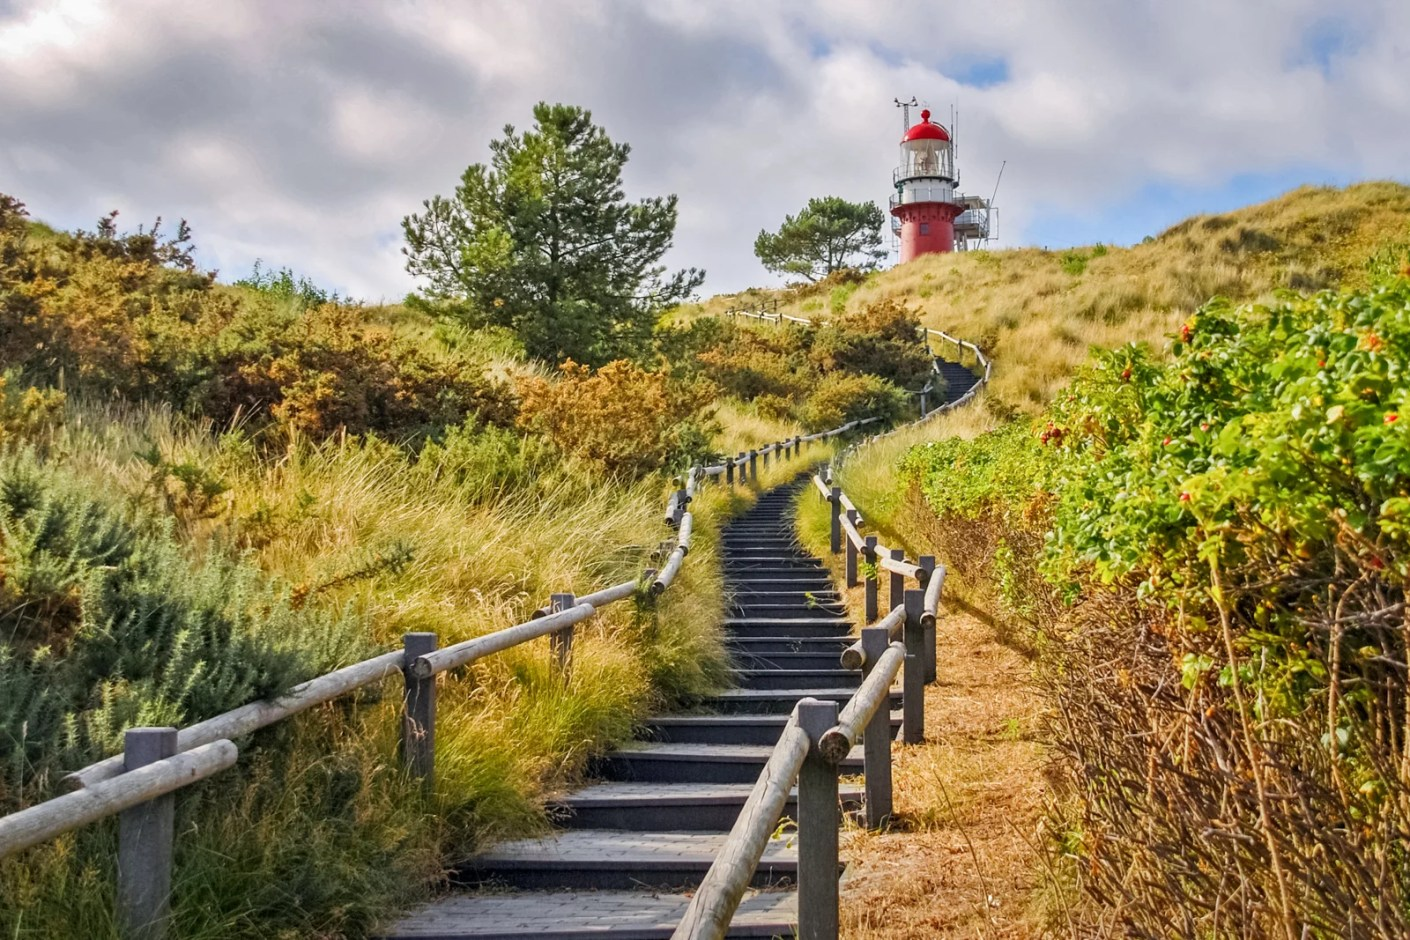 Stairs towards the lighthouse of the Frisian Island of Vlieland on the Wadden Islands.(Photo by Chris Rinckes / Shutterstock)